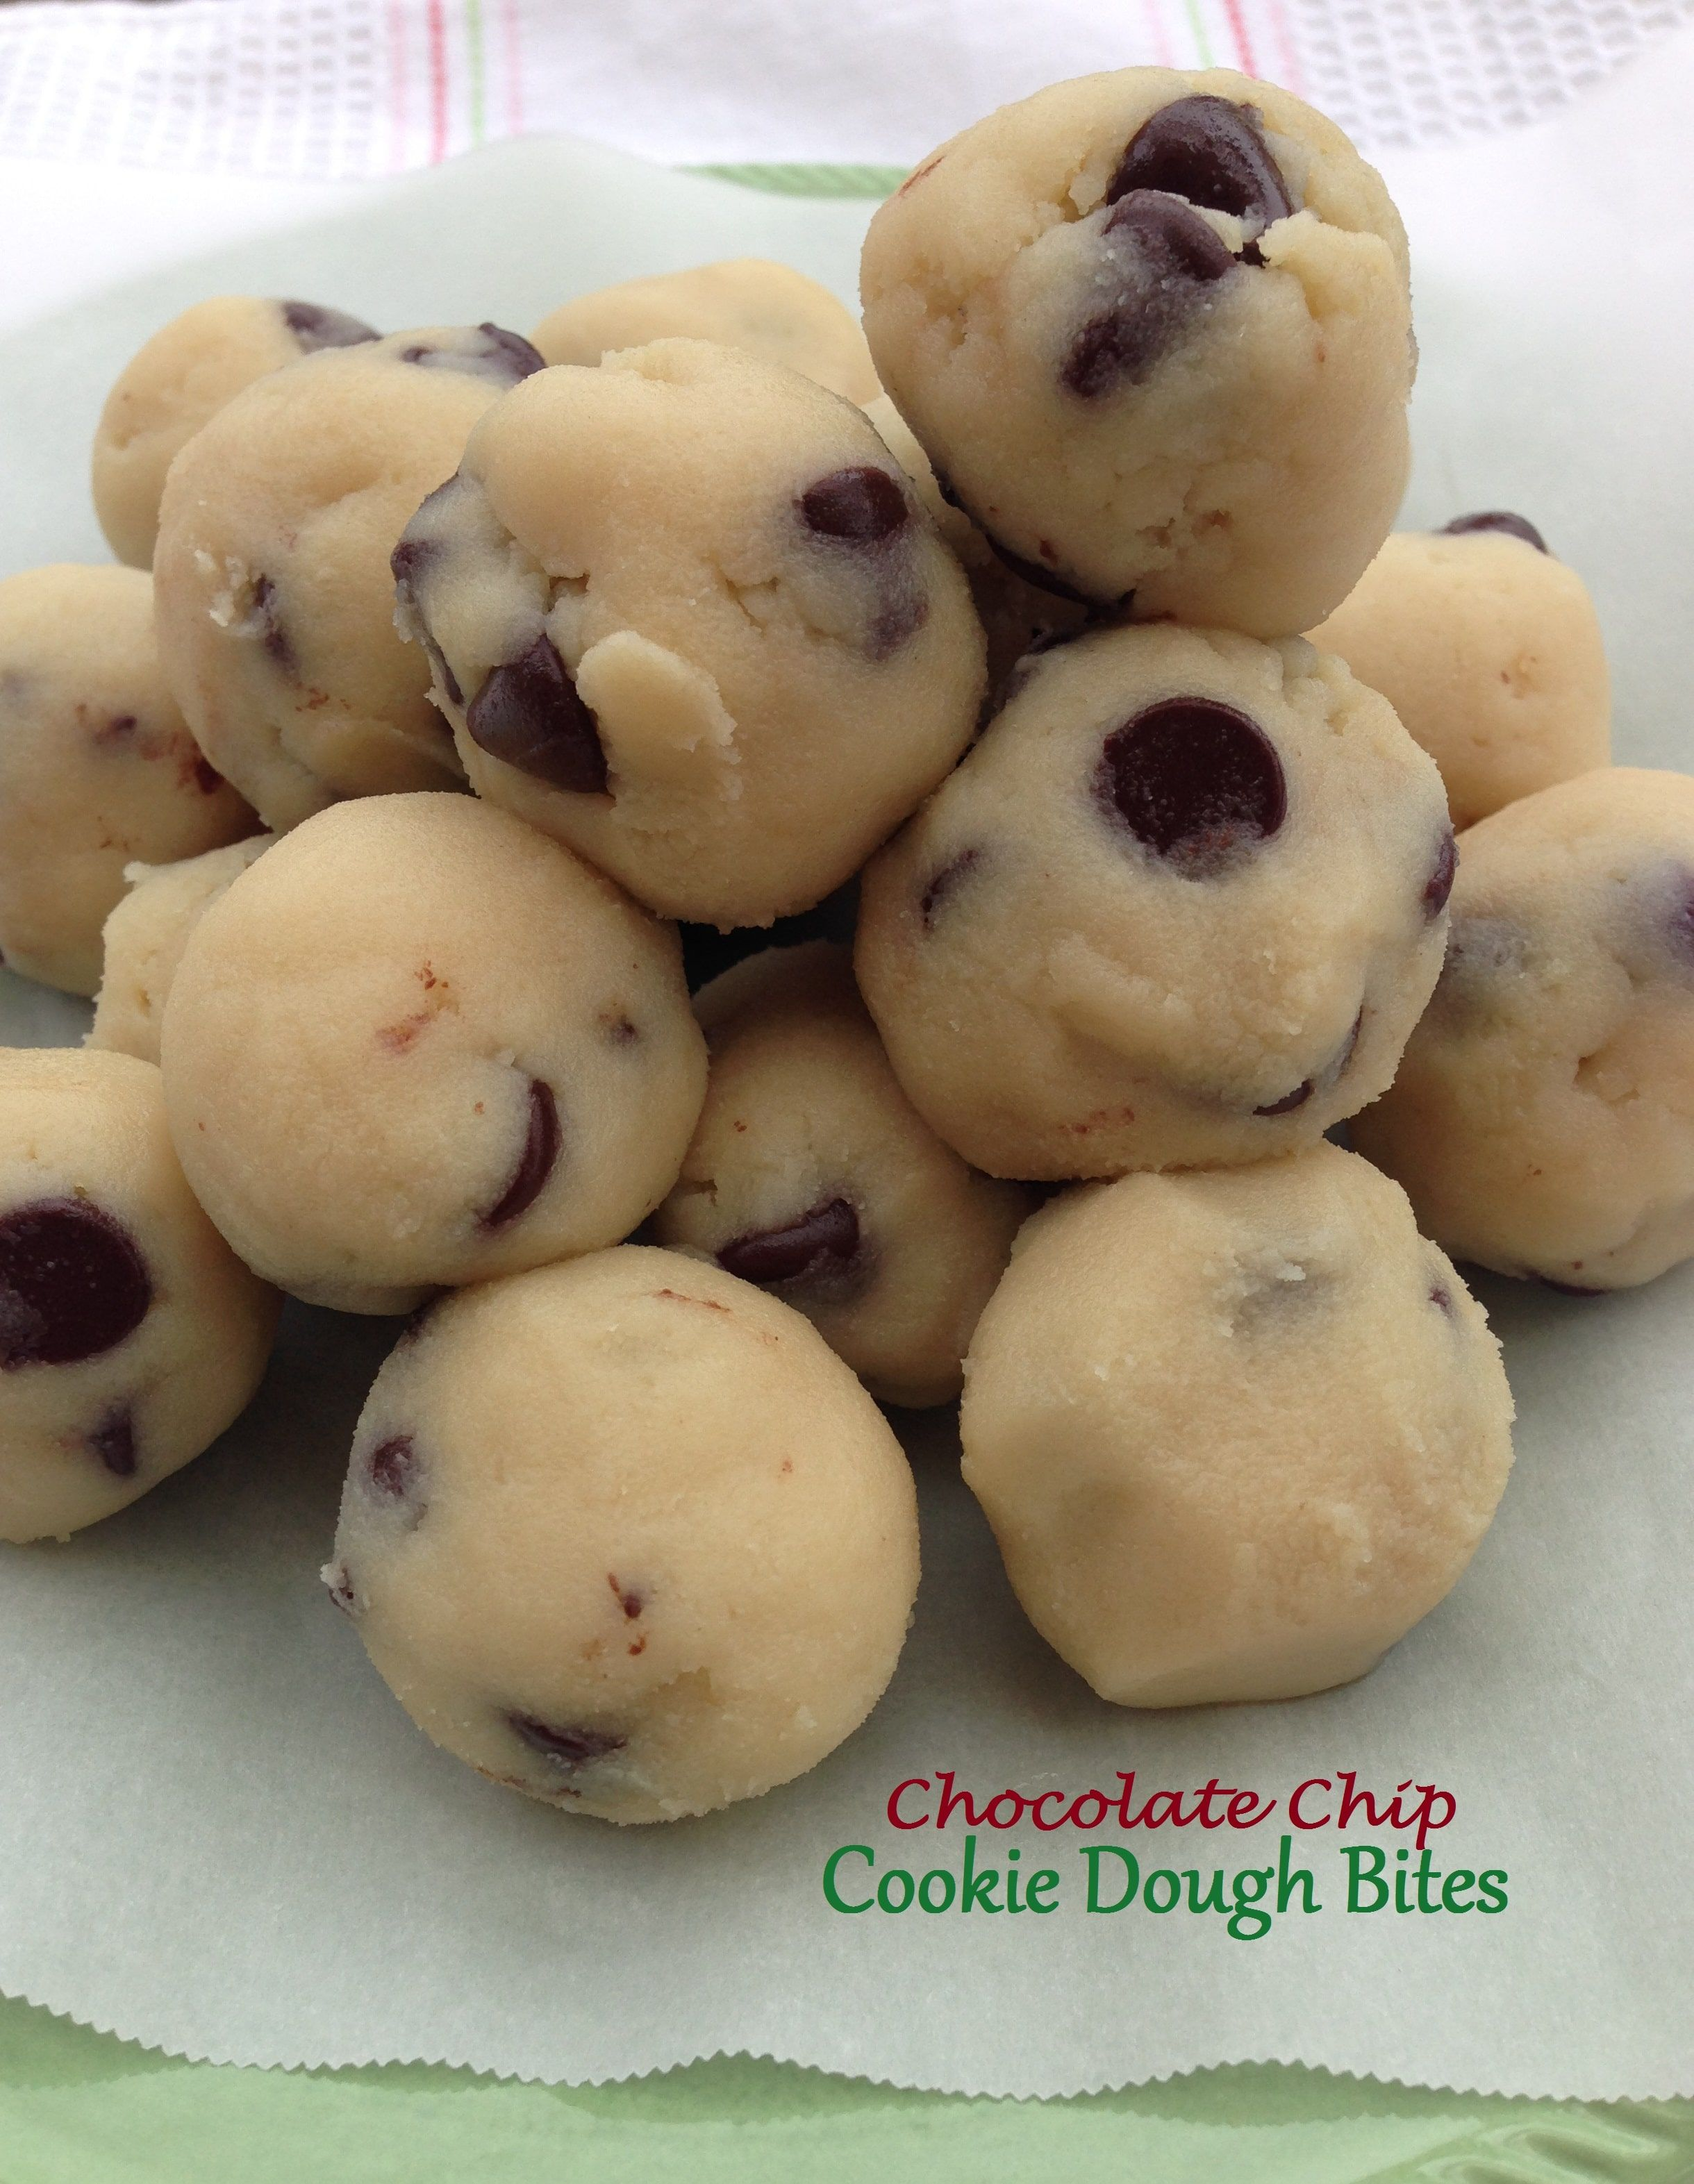 These cookie dough bites are dairy-free, gluten-free, grain-free, and egg-free. They are smooth, creamy, and add just the right amount of sweetness to satisfy any craving. You can eat them as is, or dip them in dark chocolate for an extra special treat.